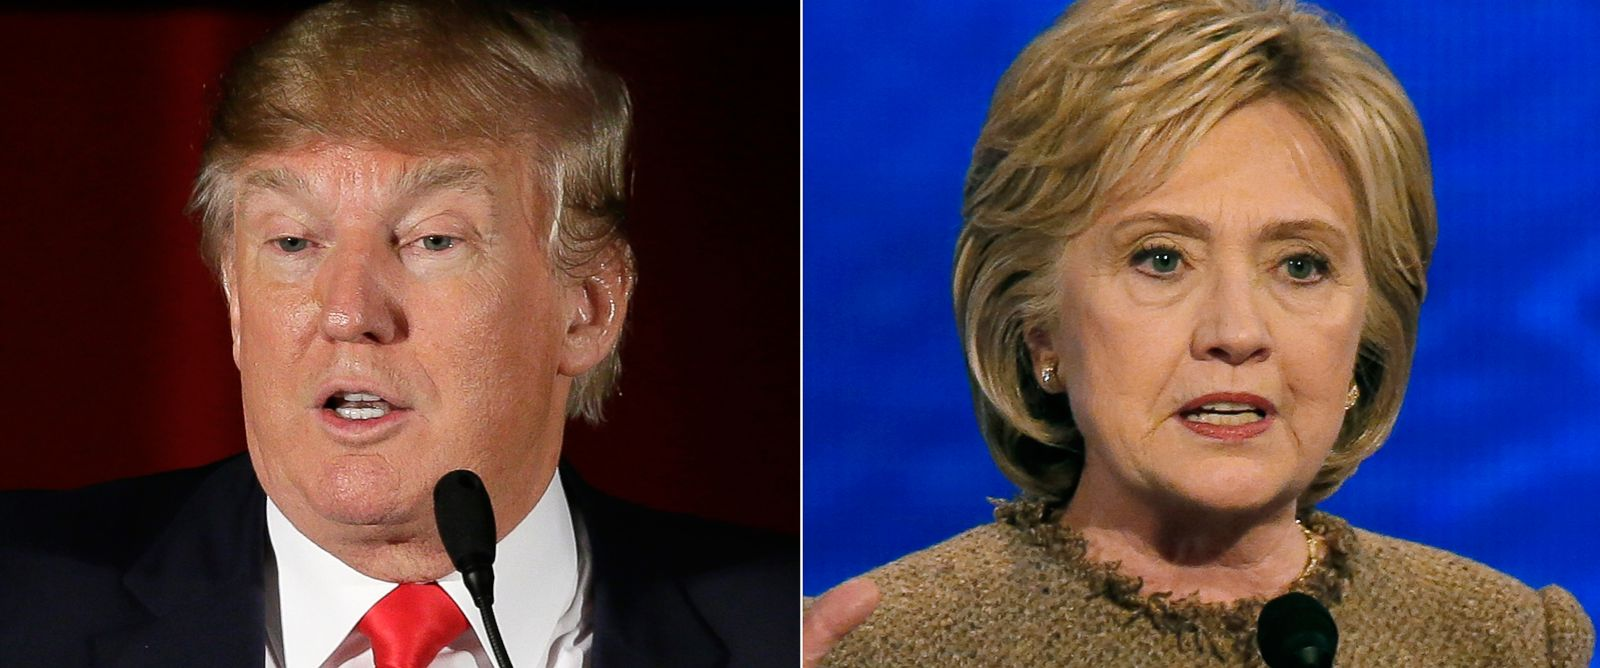 PHOTO: Pictured (L-R) are Republican presidential candidate Donald Trump in in Cedar Rapids, Iowa, Dec. 19, 2015 and Democratic presidential candidate Hillary Clinton in Manchester, N.H., Dec. 19, 2015.